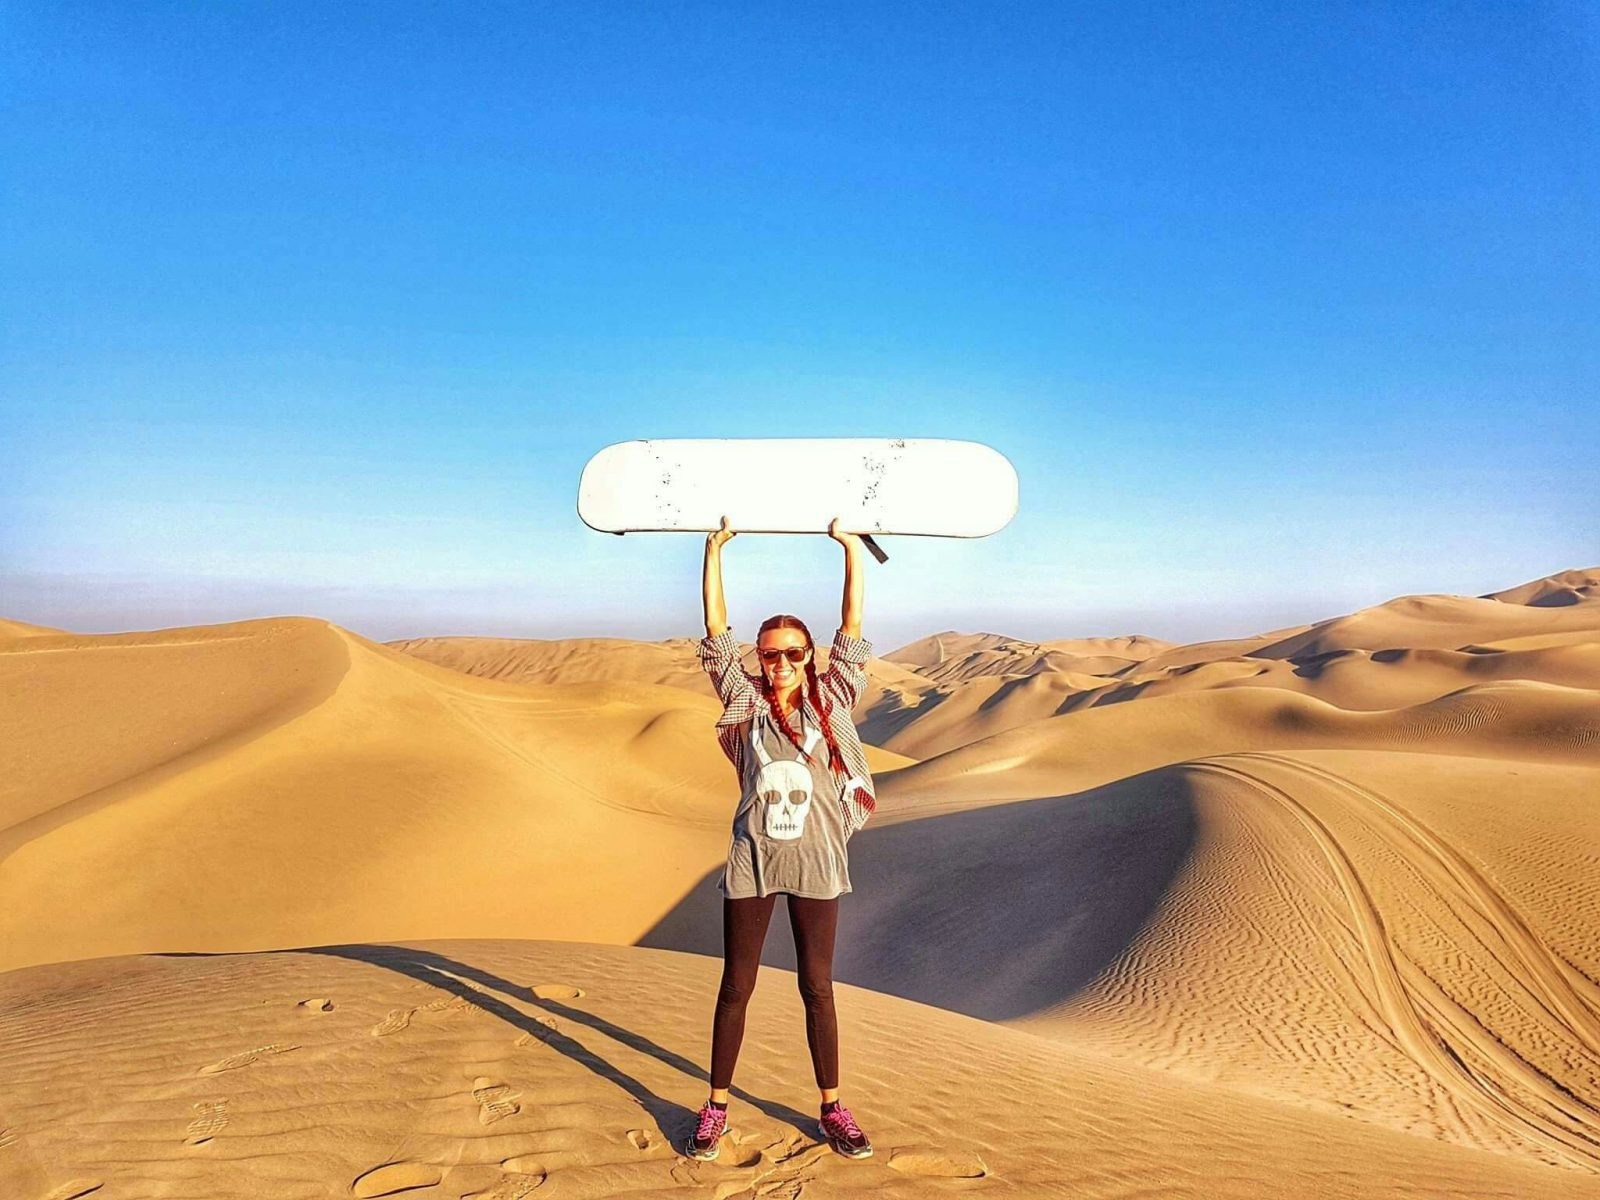 """<img src=""""images/"""" width=""""800"""" height=""""600"""" alt=""""ica - received 10154870728085636 1050411371 - Peru: Sand and Sails, Ica, Huacachina and Paracas"""">"""